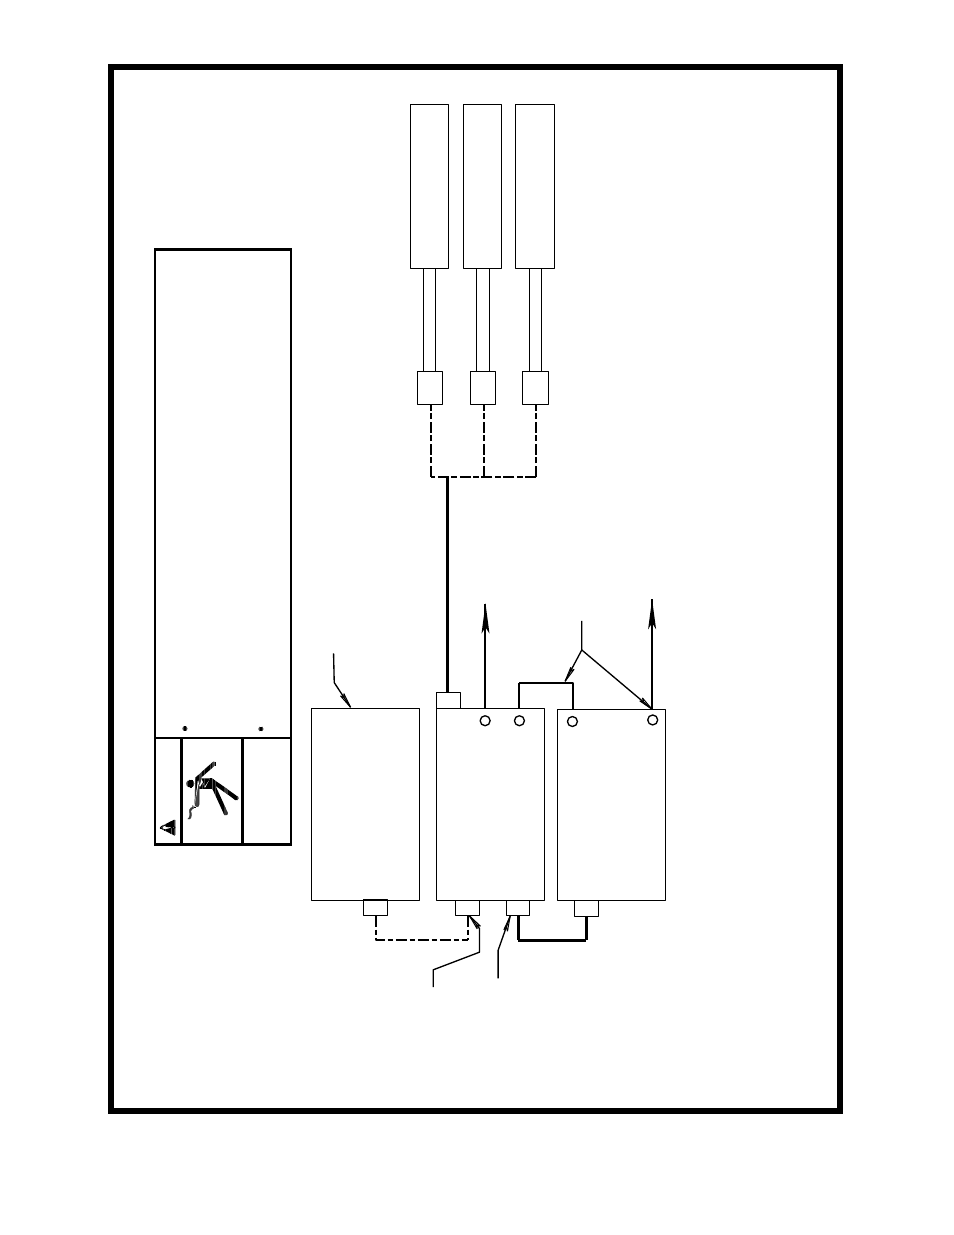 hight resolution of lincoln k870 wiring diagram cool wiring diagrams lincoln k870 wiring diagram